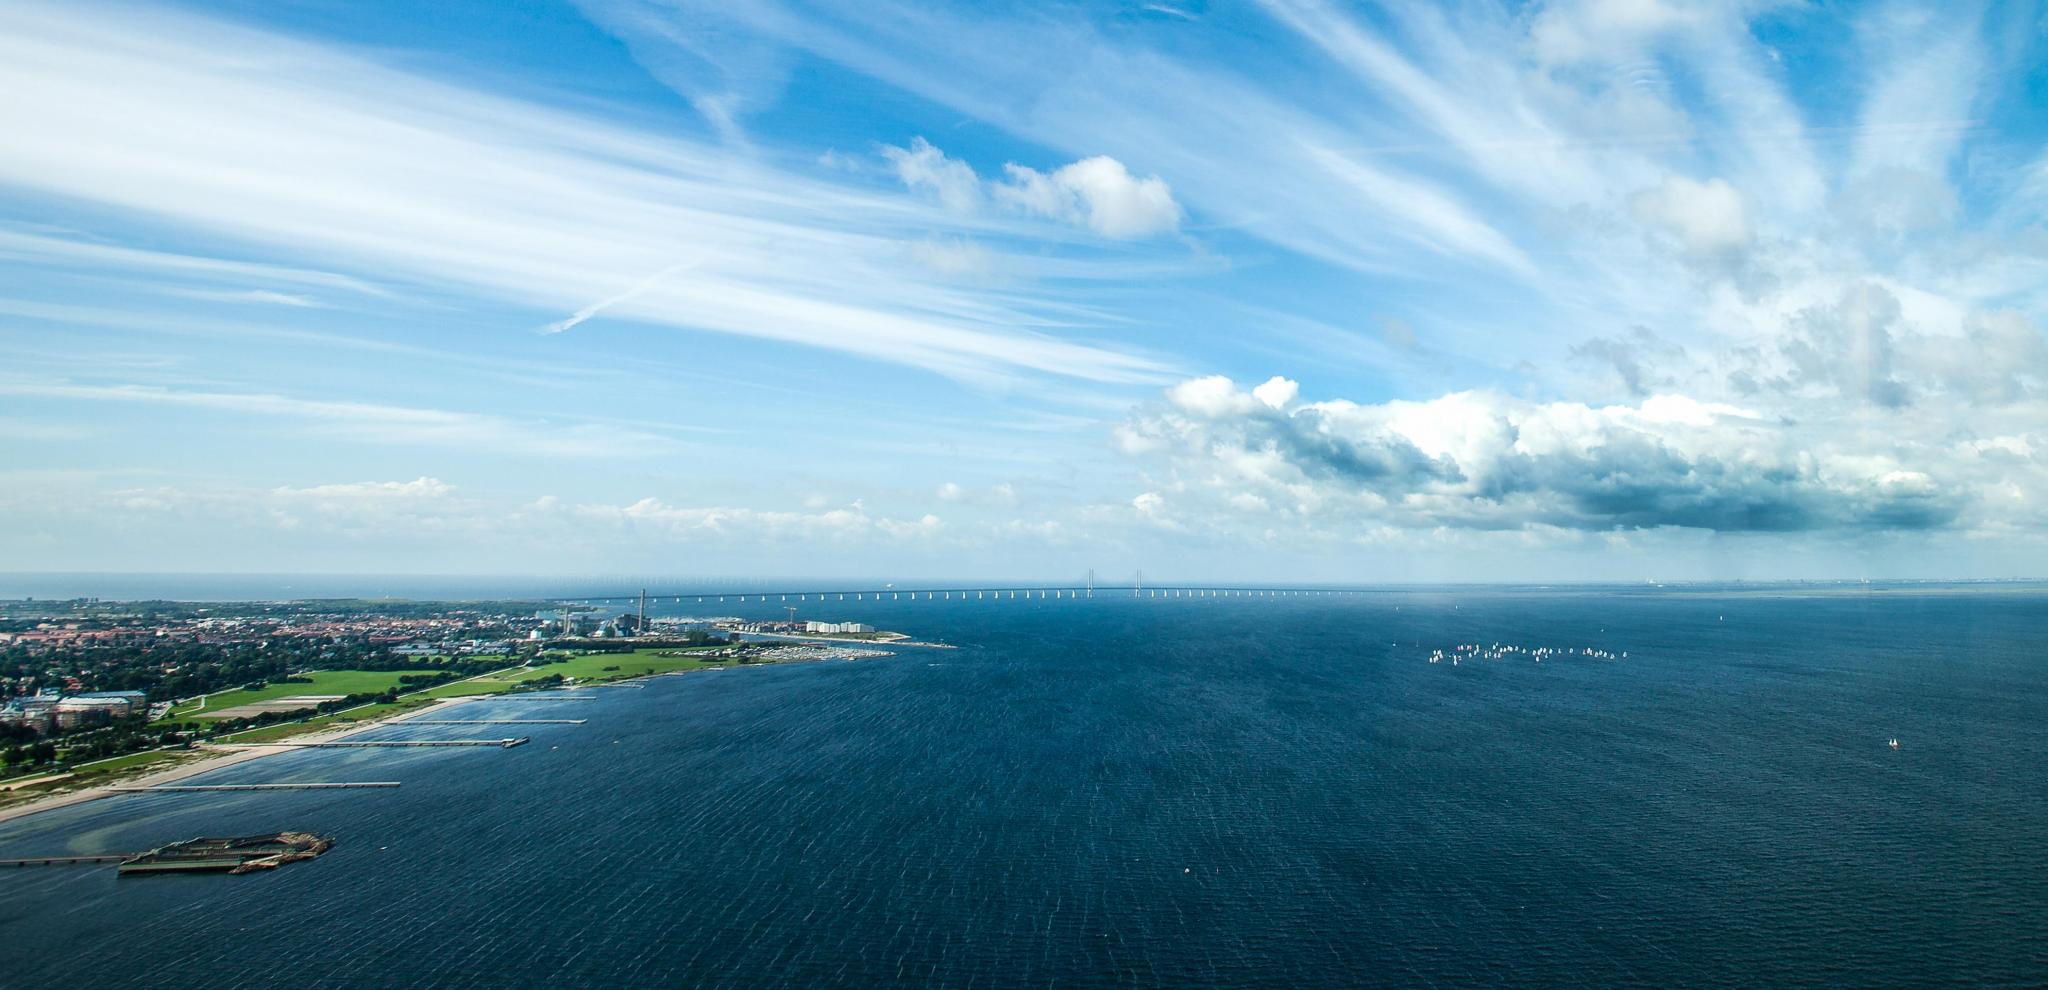 The Öresund Bridge over the sea